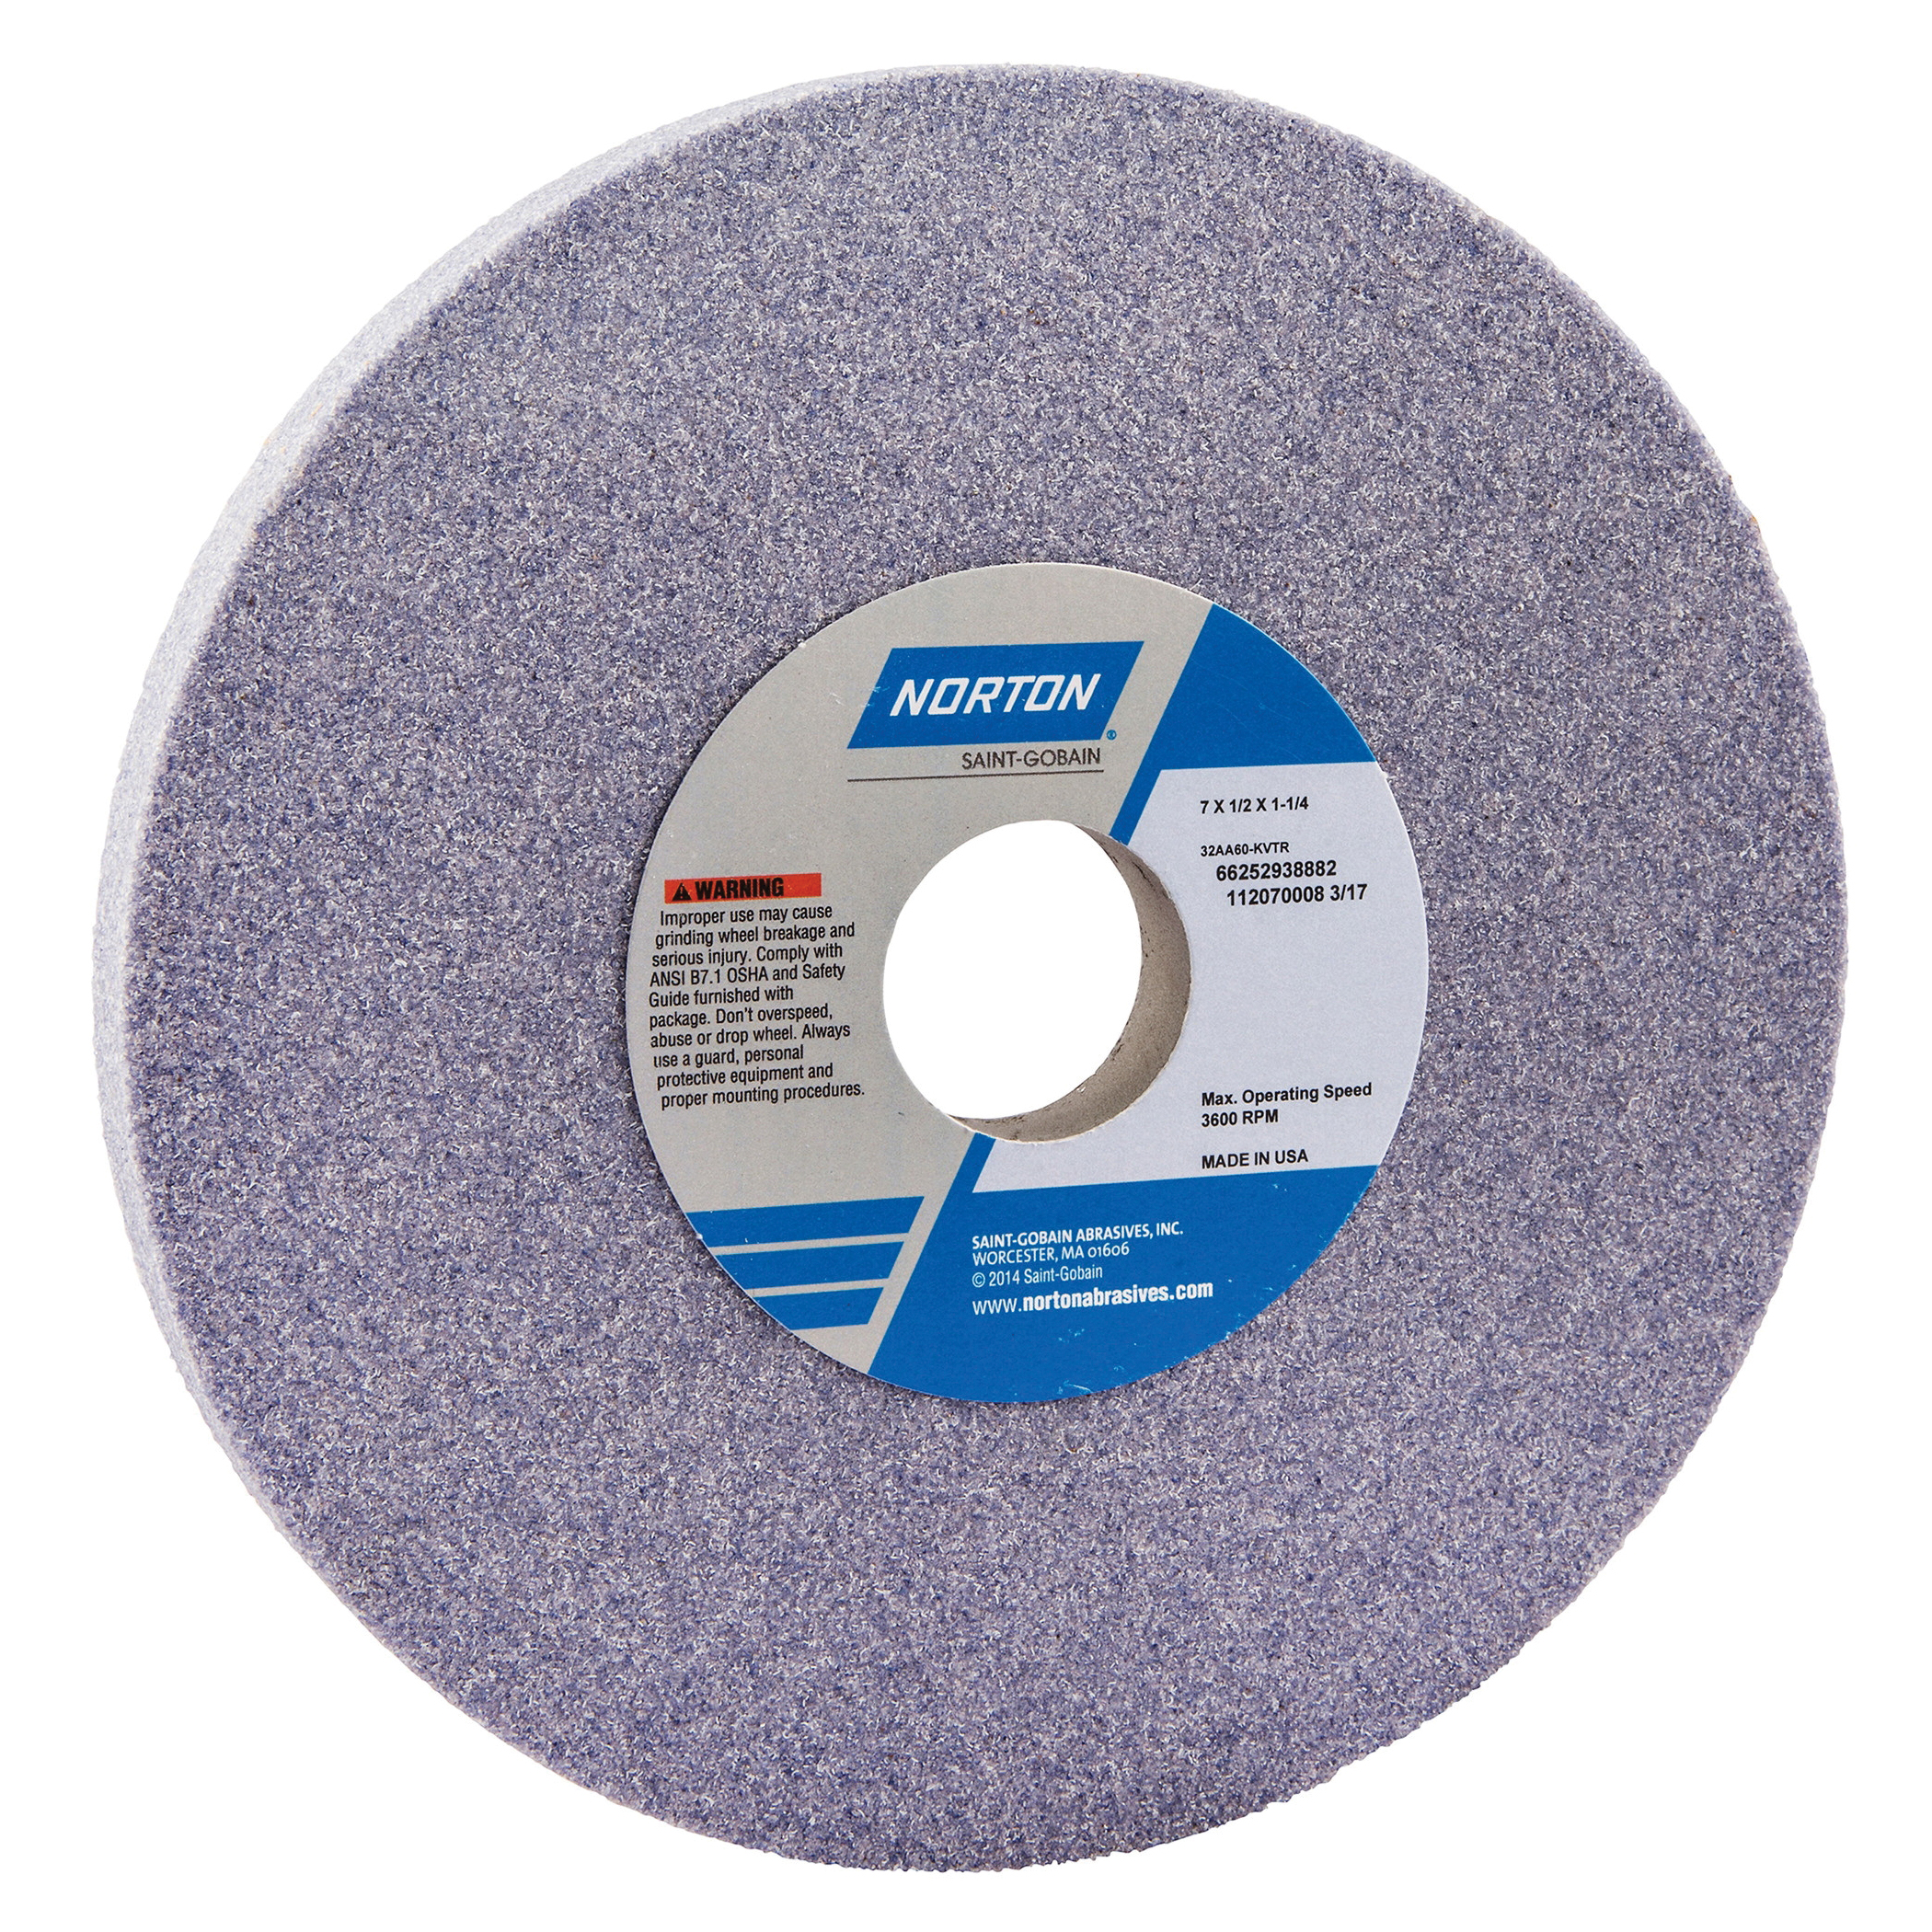 Norton® 66252938882 32AA Straight Toolroom Wheel, 7 in Dia x 1/2 in THK, 1-1/4 in Center Hole, 60 Grit, Aluminum Oxide Abrasive